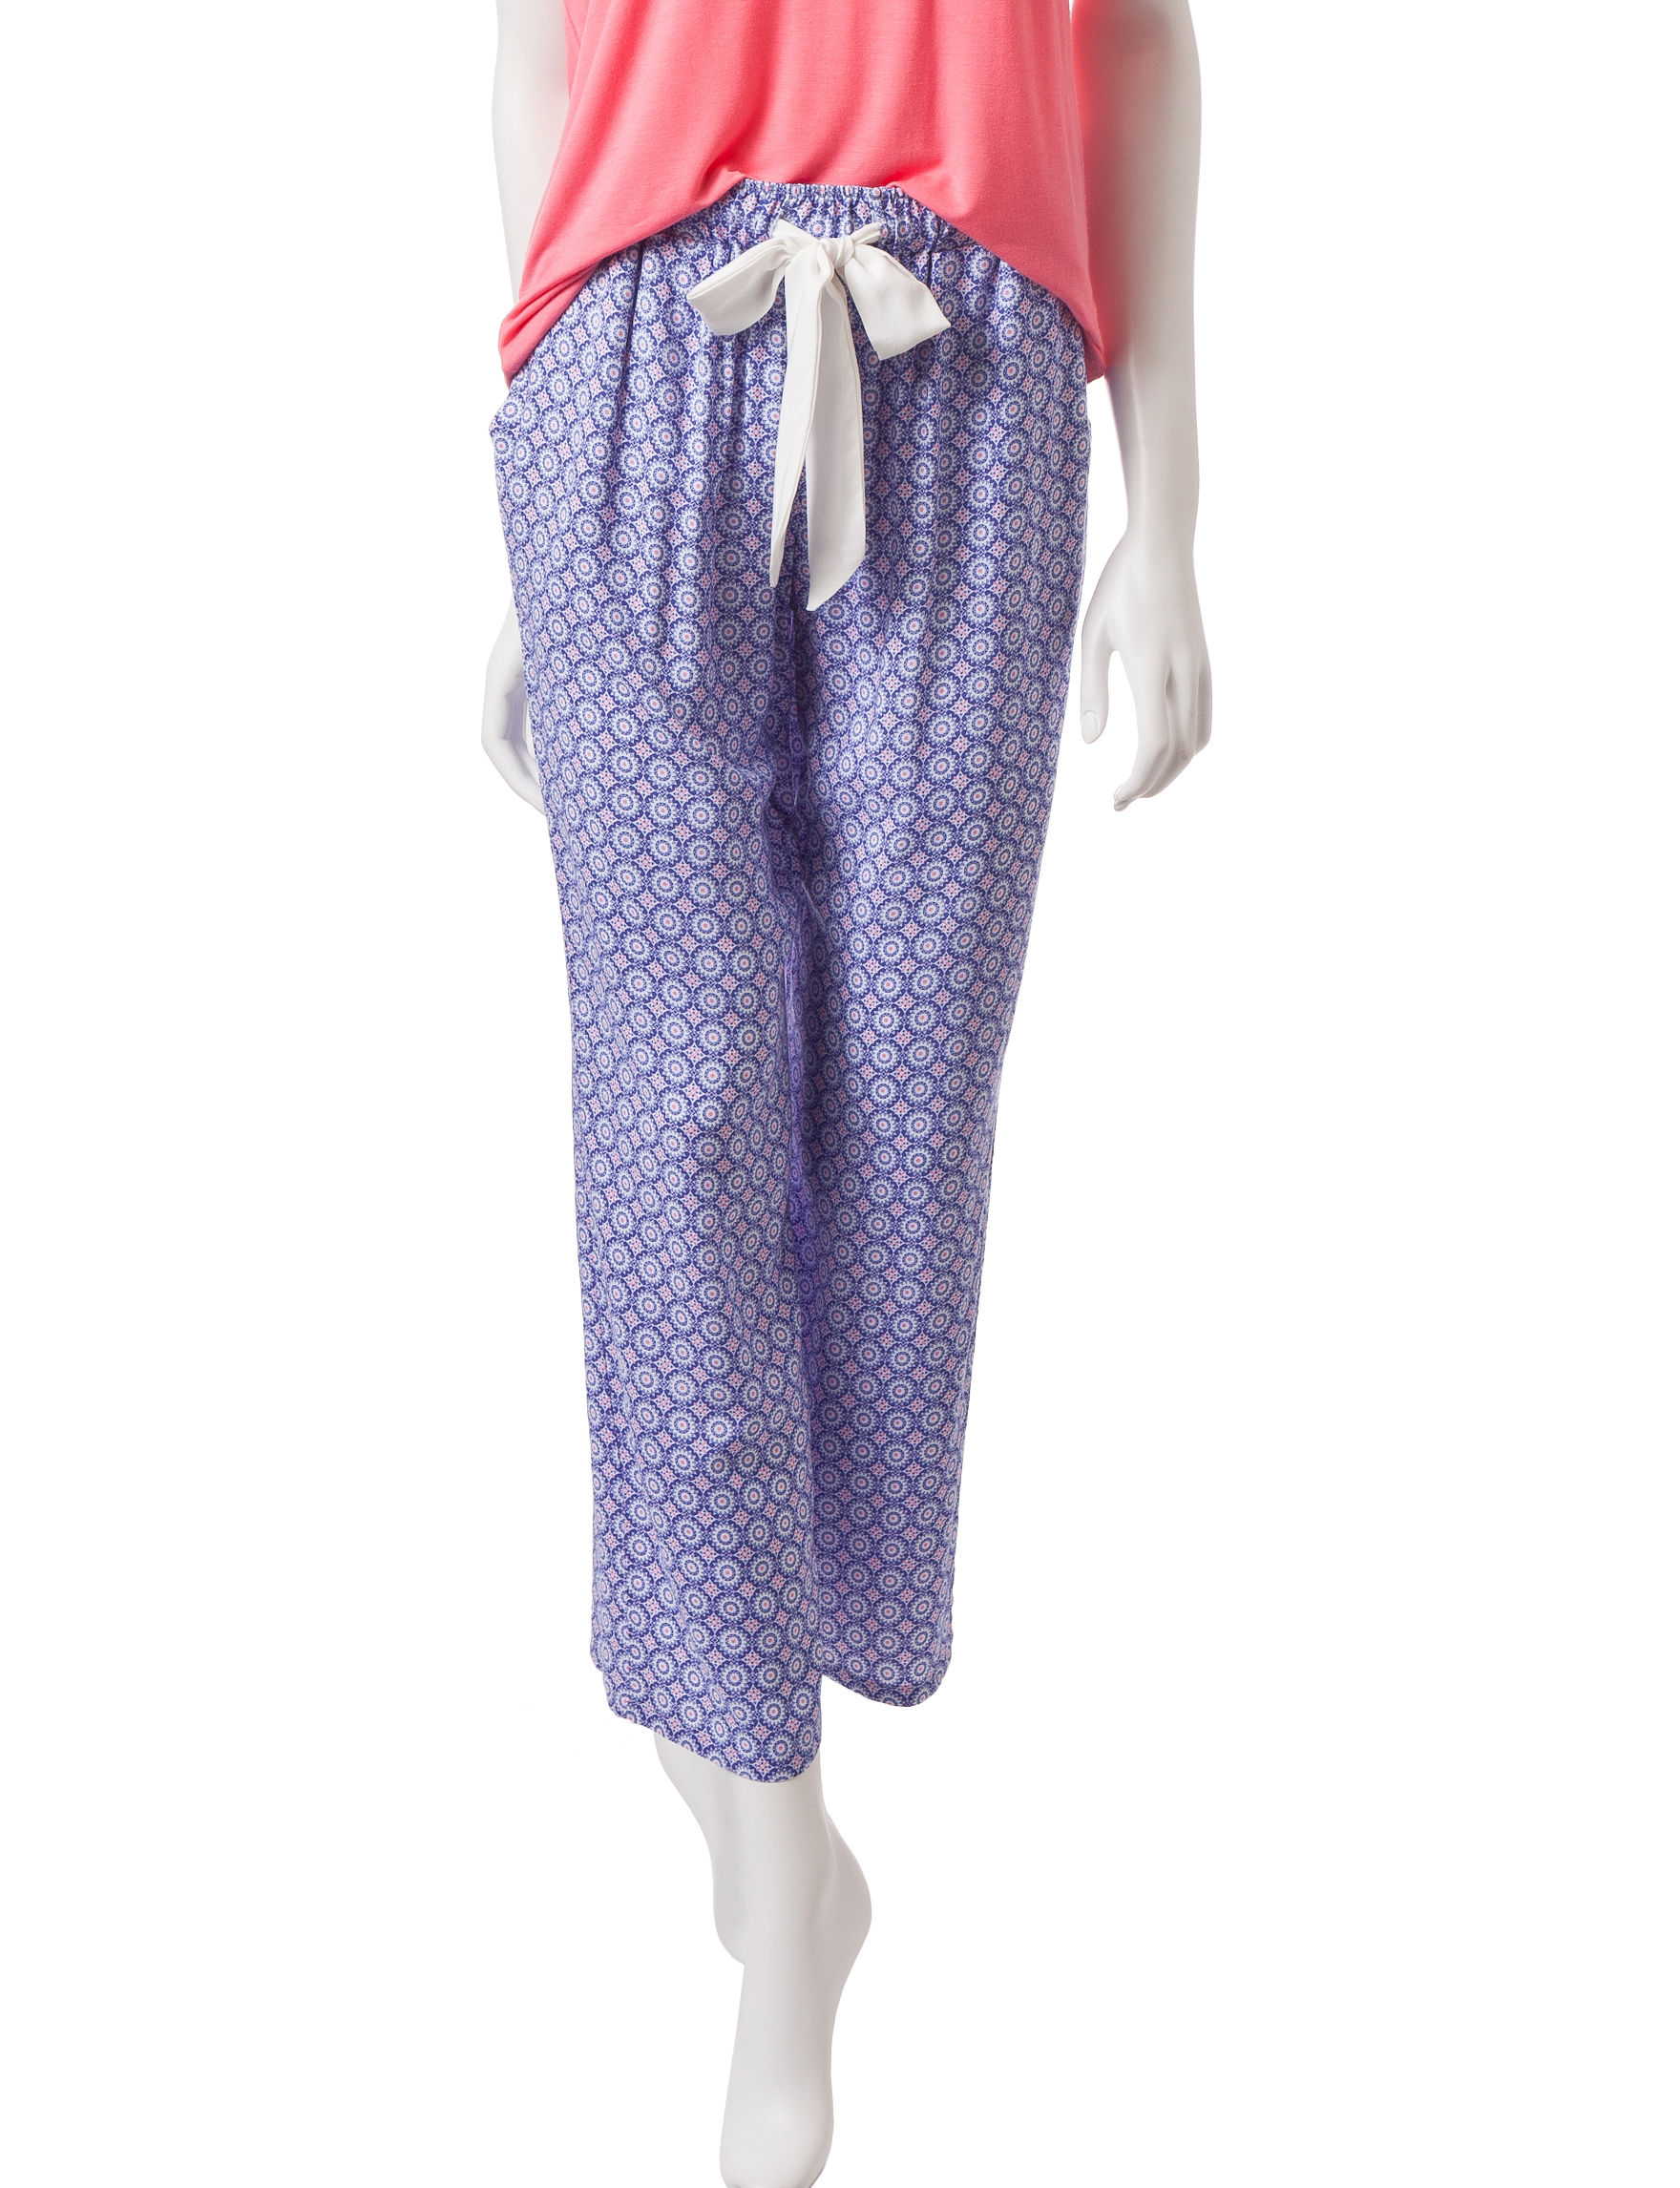 Laura Ashley Blue / Coral Pajama Bottoms